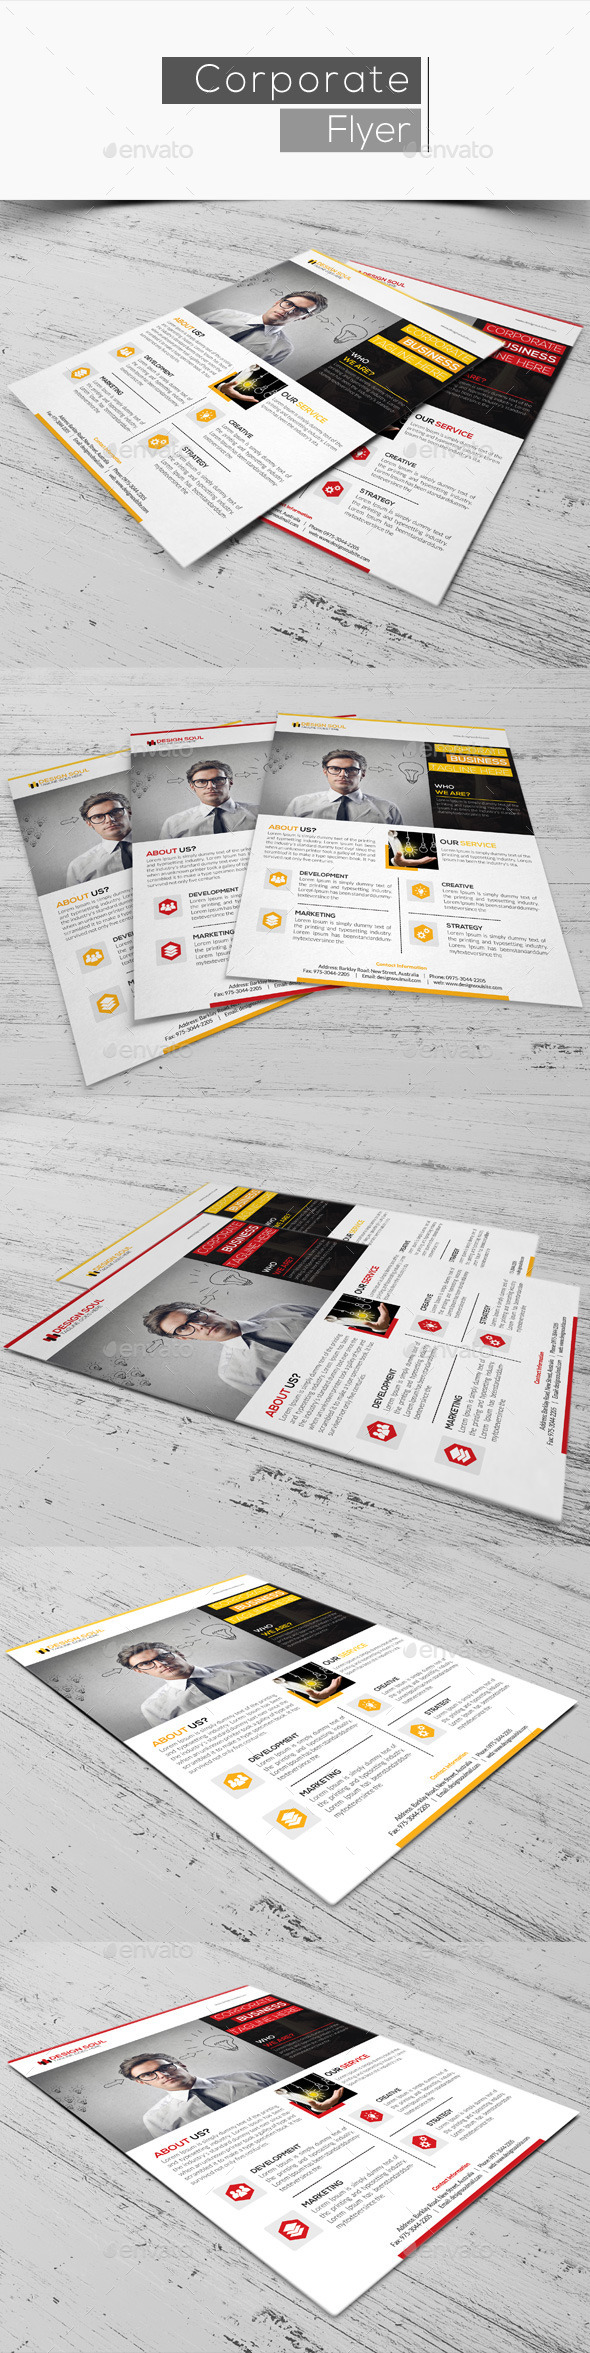 GraphicRiver Corporate Flyer 10813802